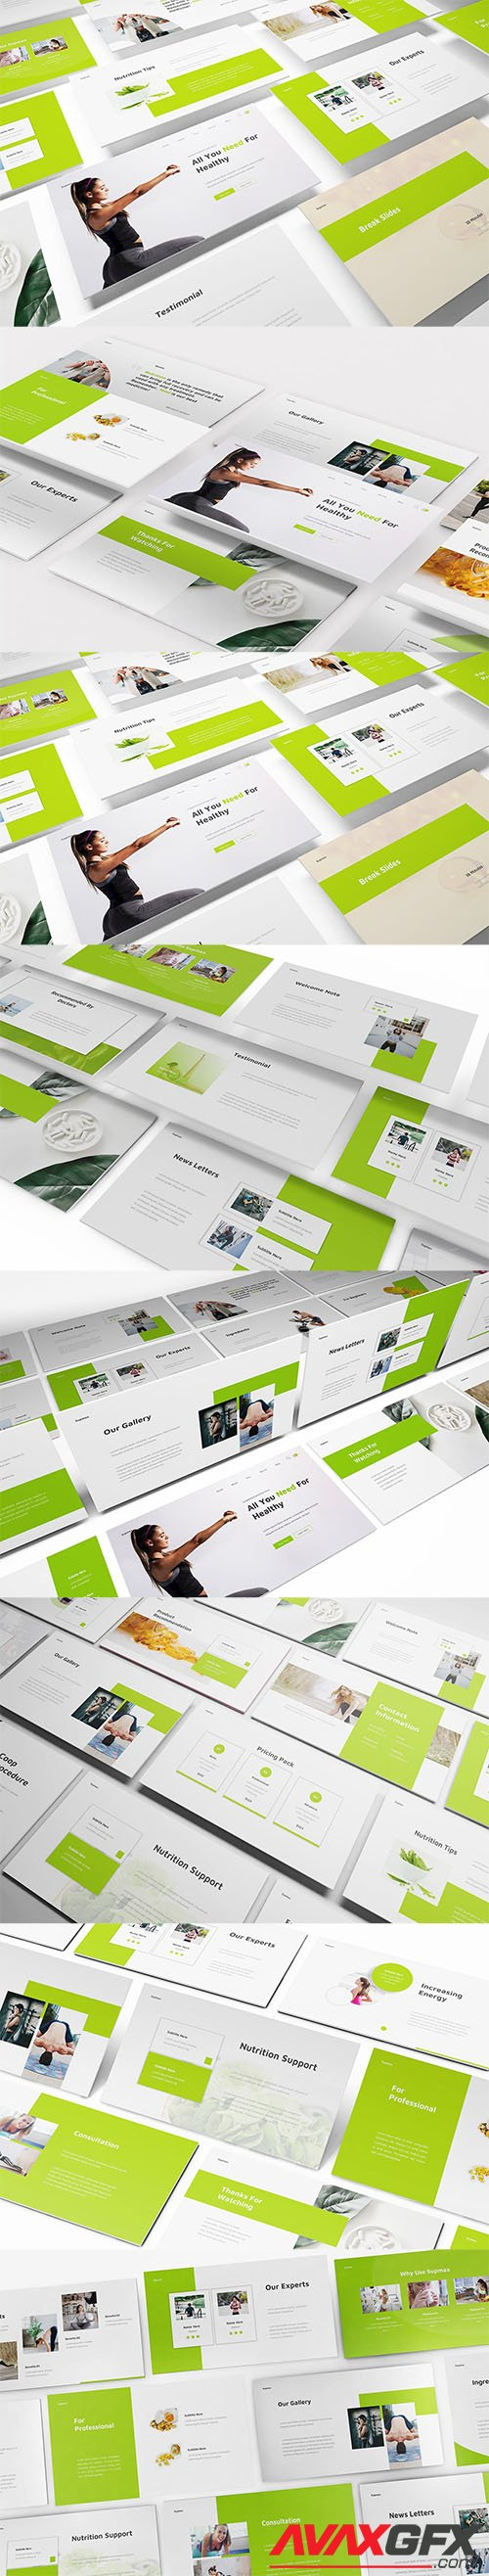 Supplements PowerPoint, Keynote, Google Slides Template